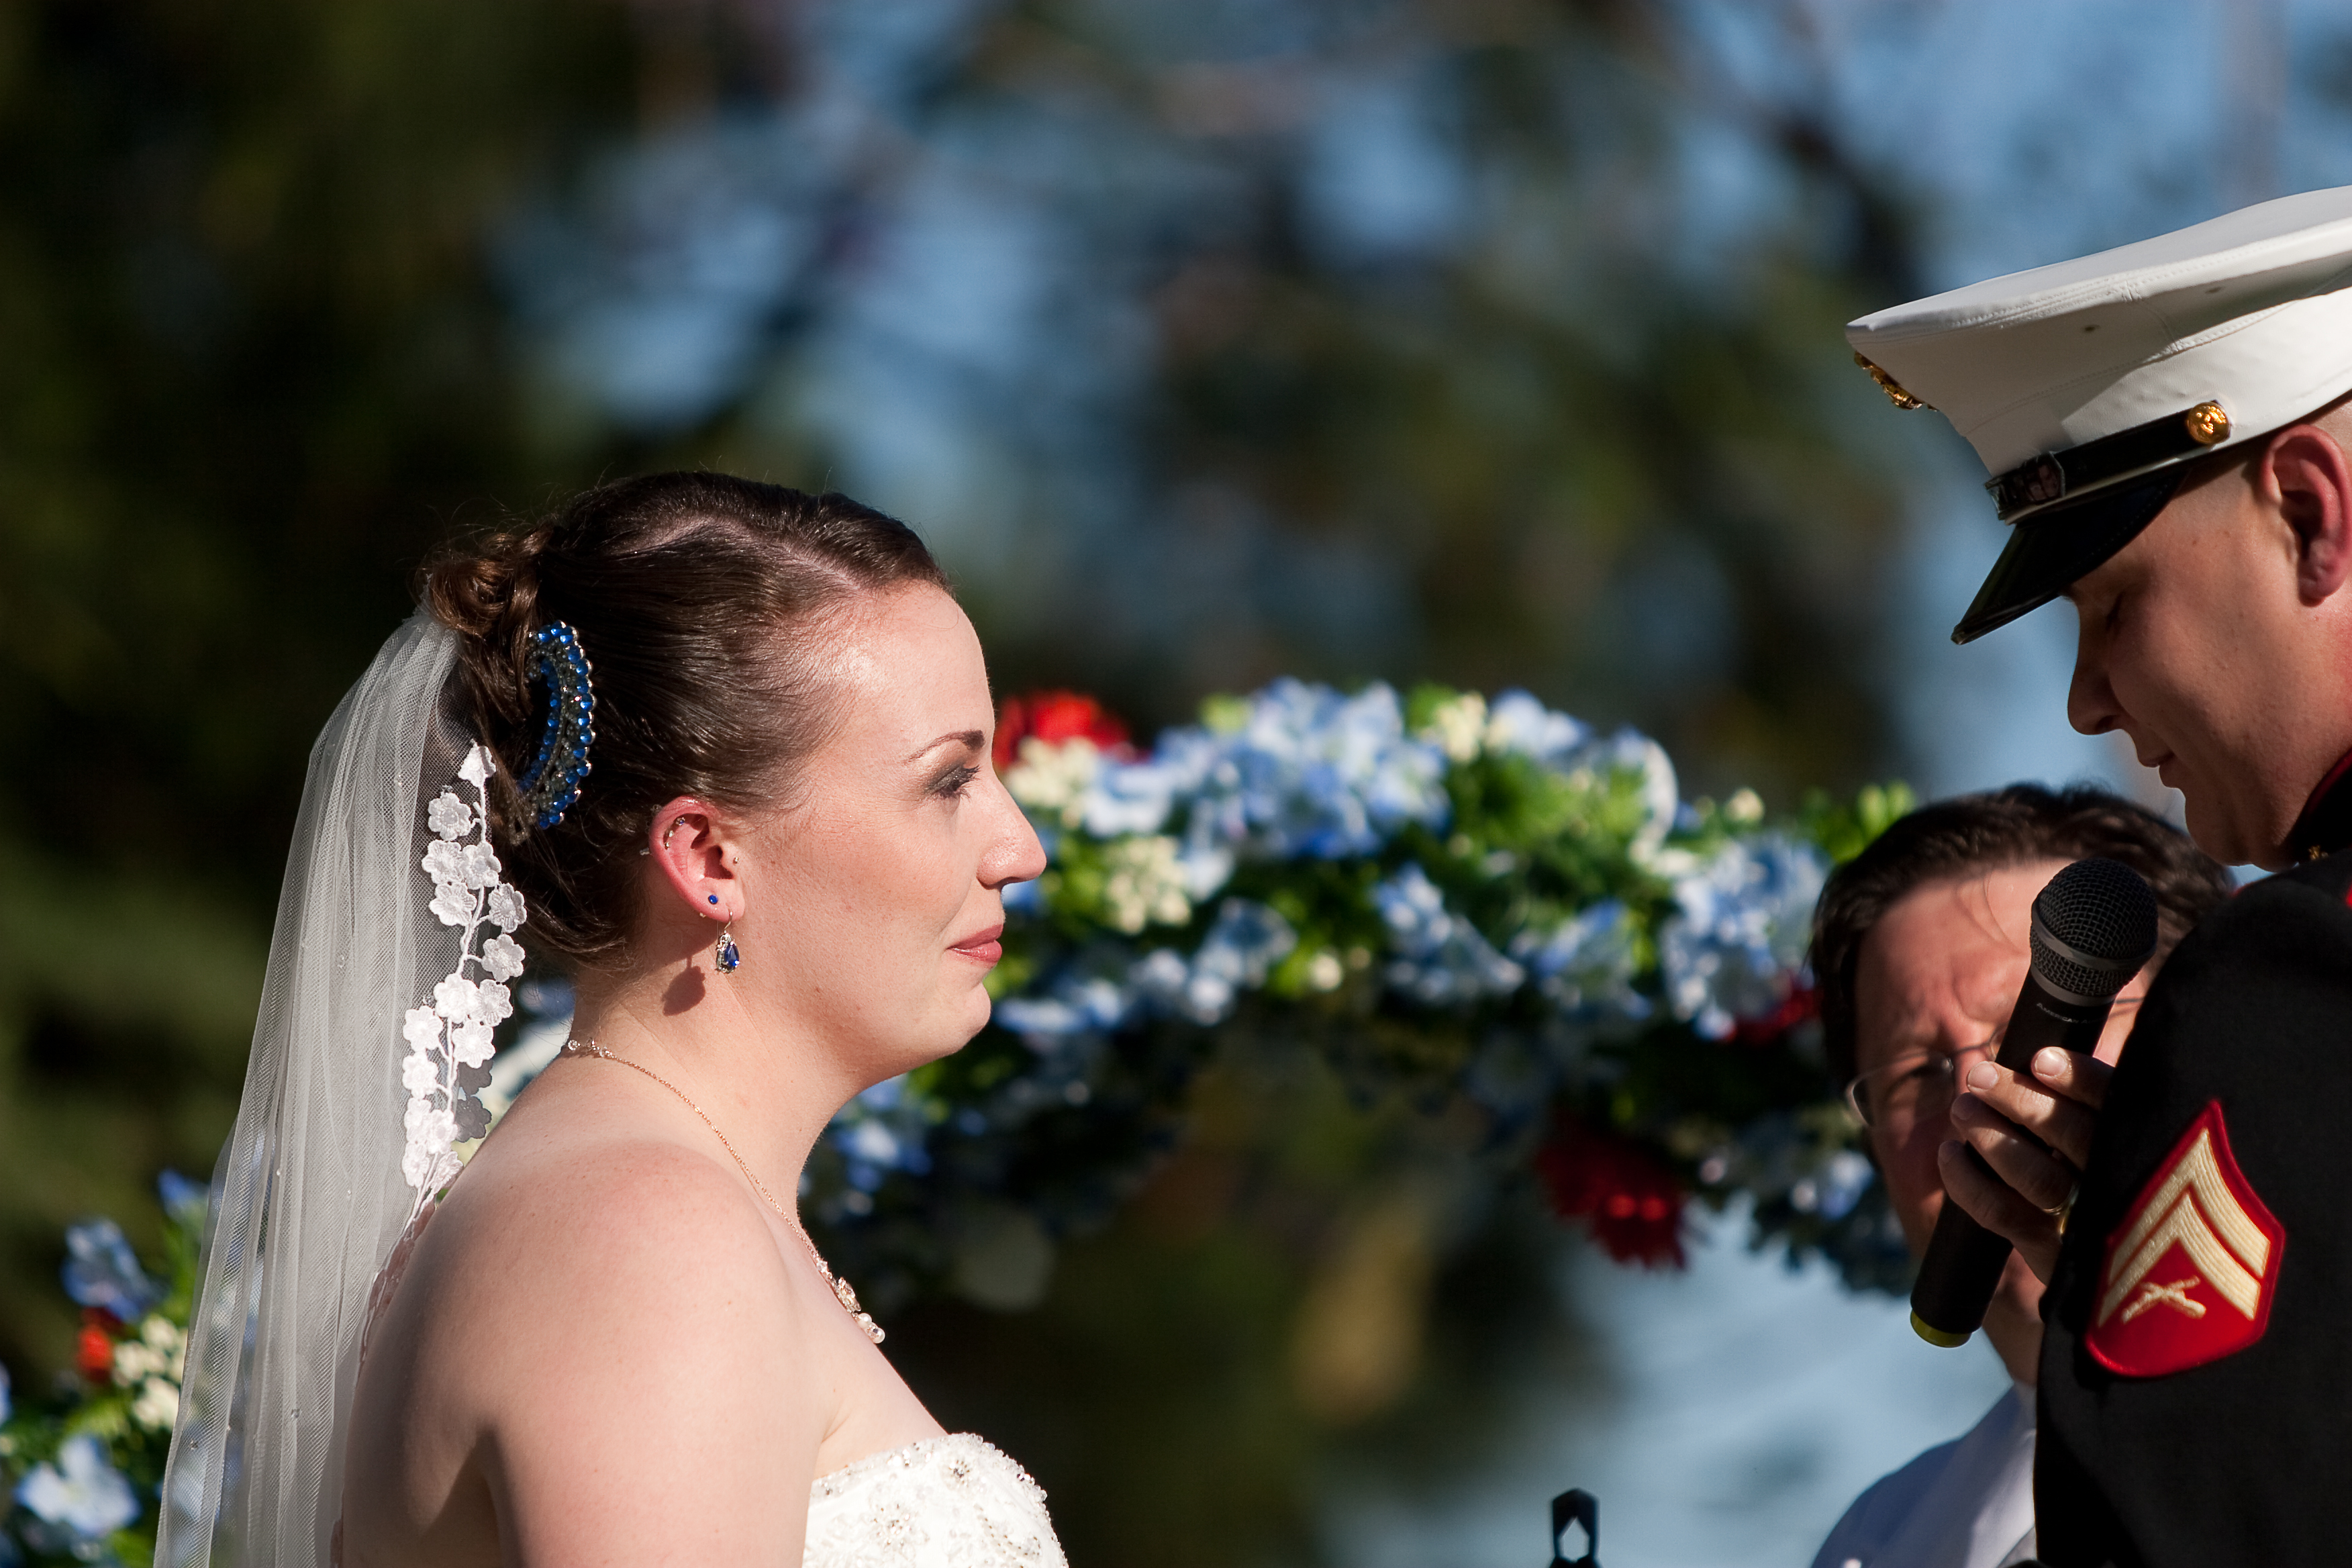 Ceremony, Flowers & Decor, Photography, Vows, Military, Marine, Hollis, Corps, Cari